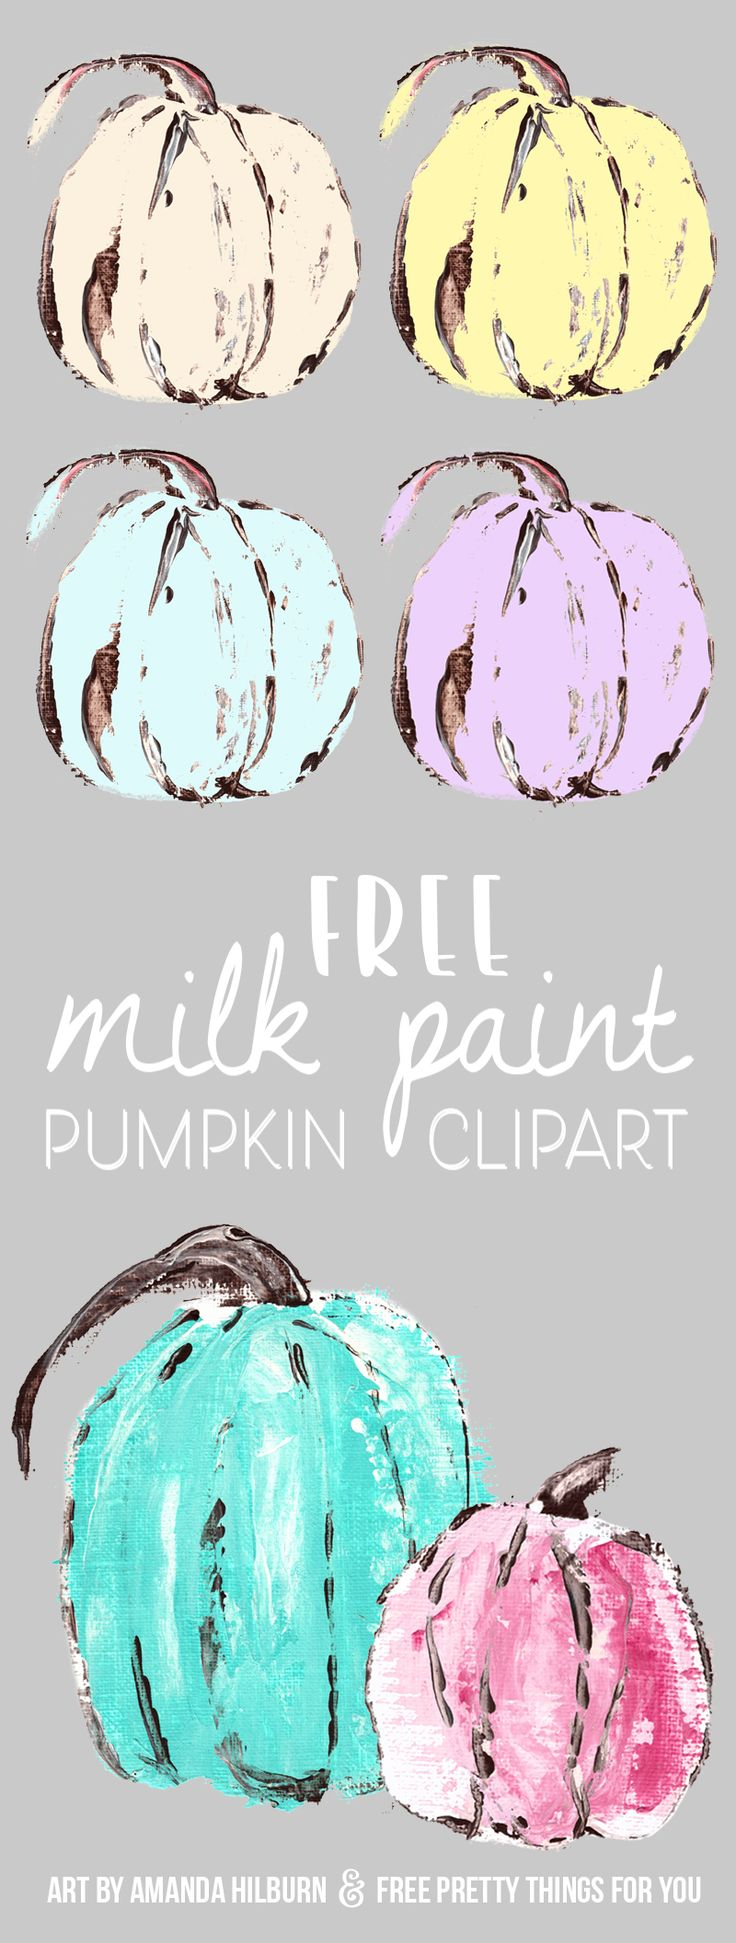 Free Farmhouse Milk Paint Pumpkin Images - Free Pretty Things For You